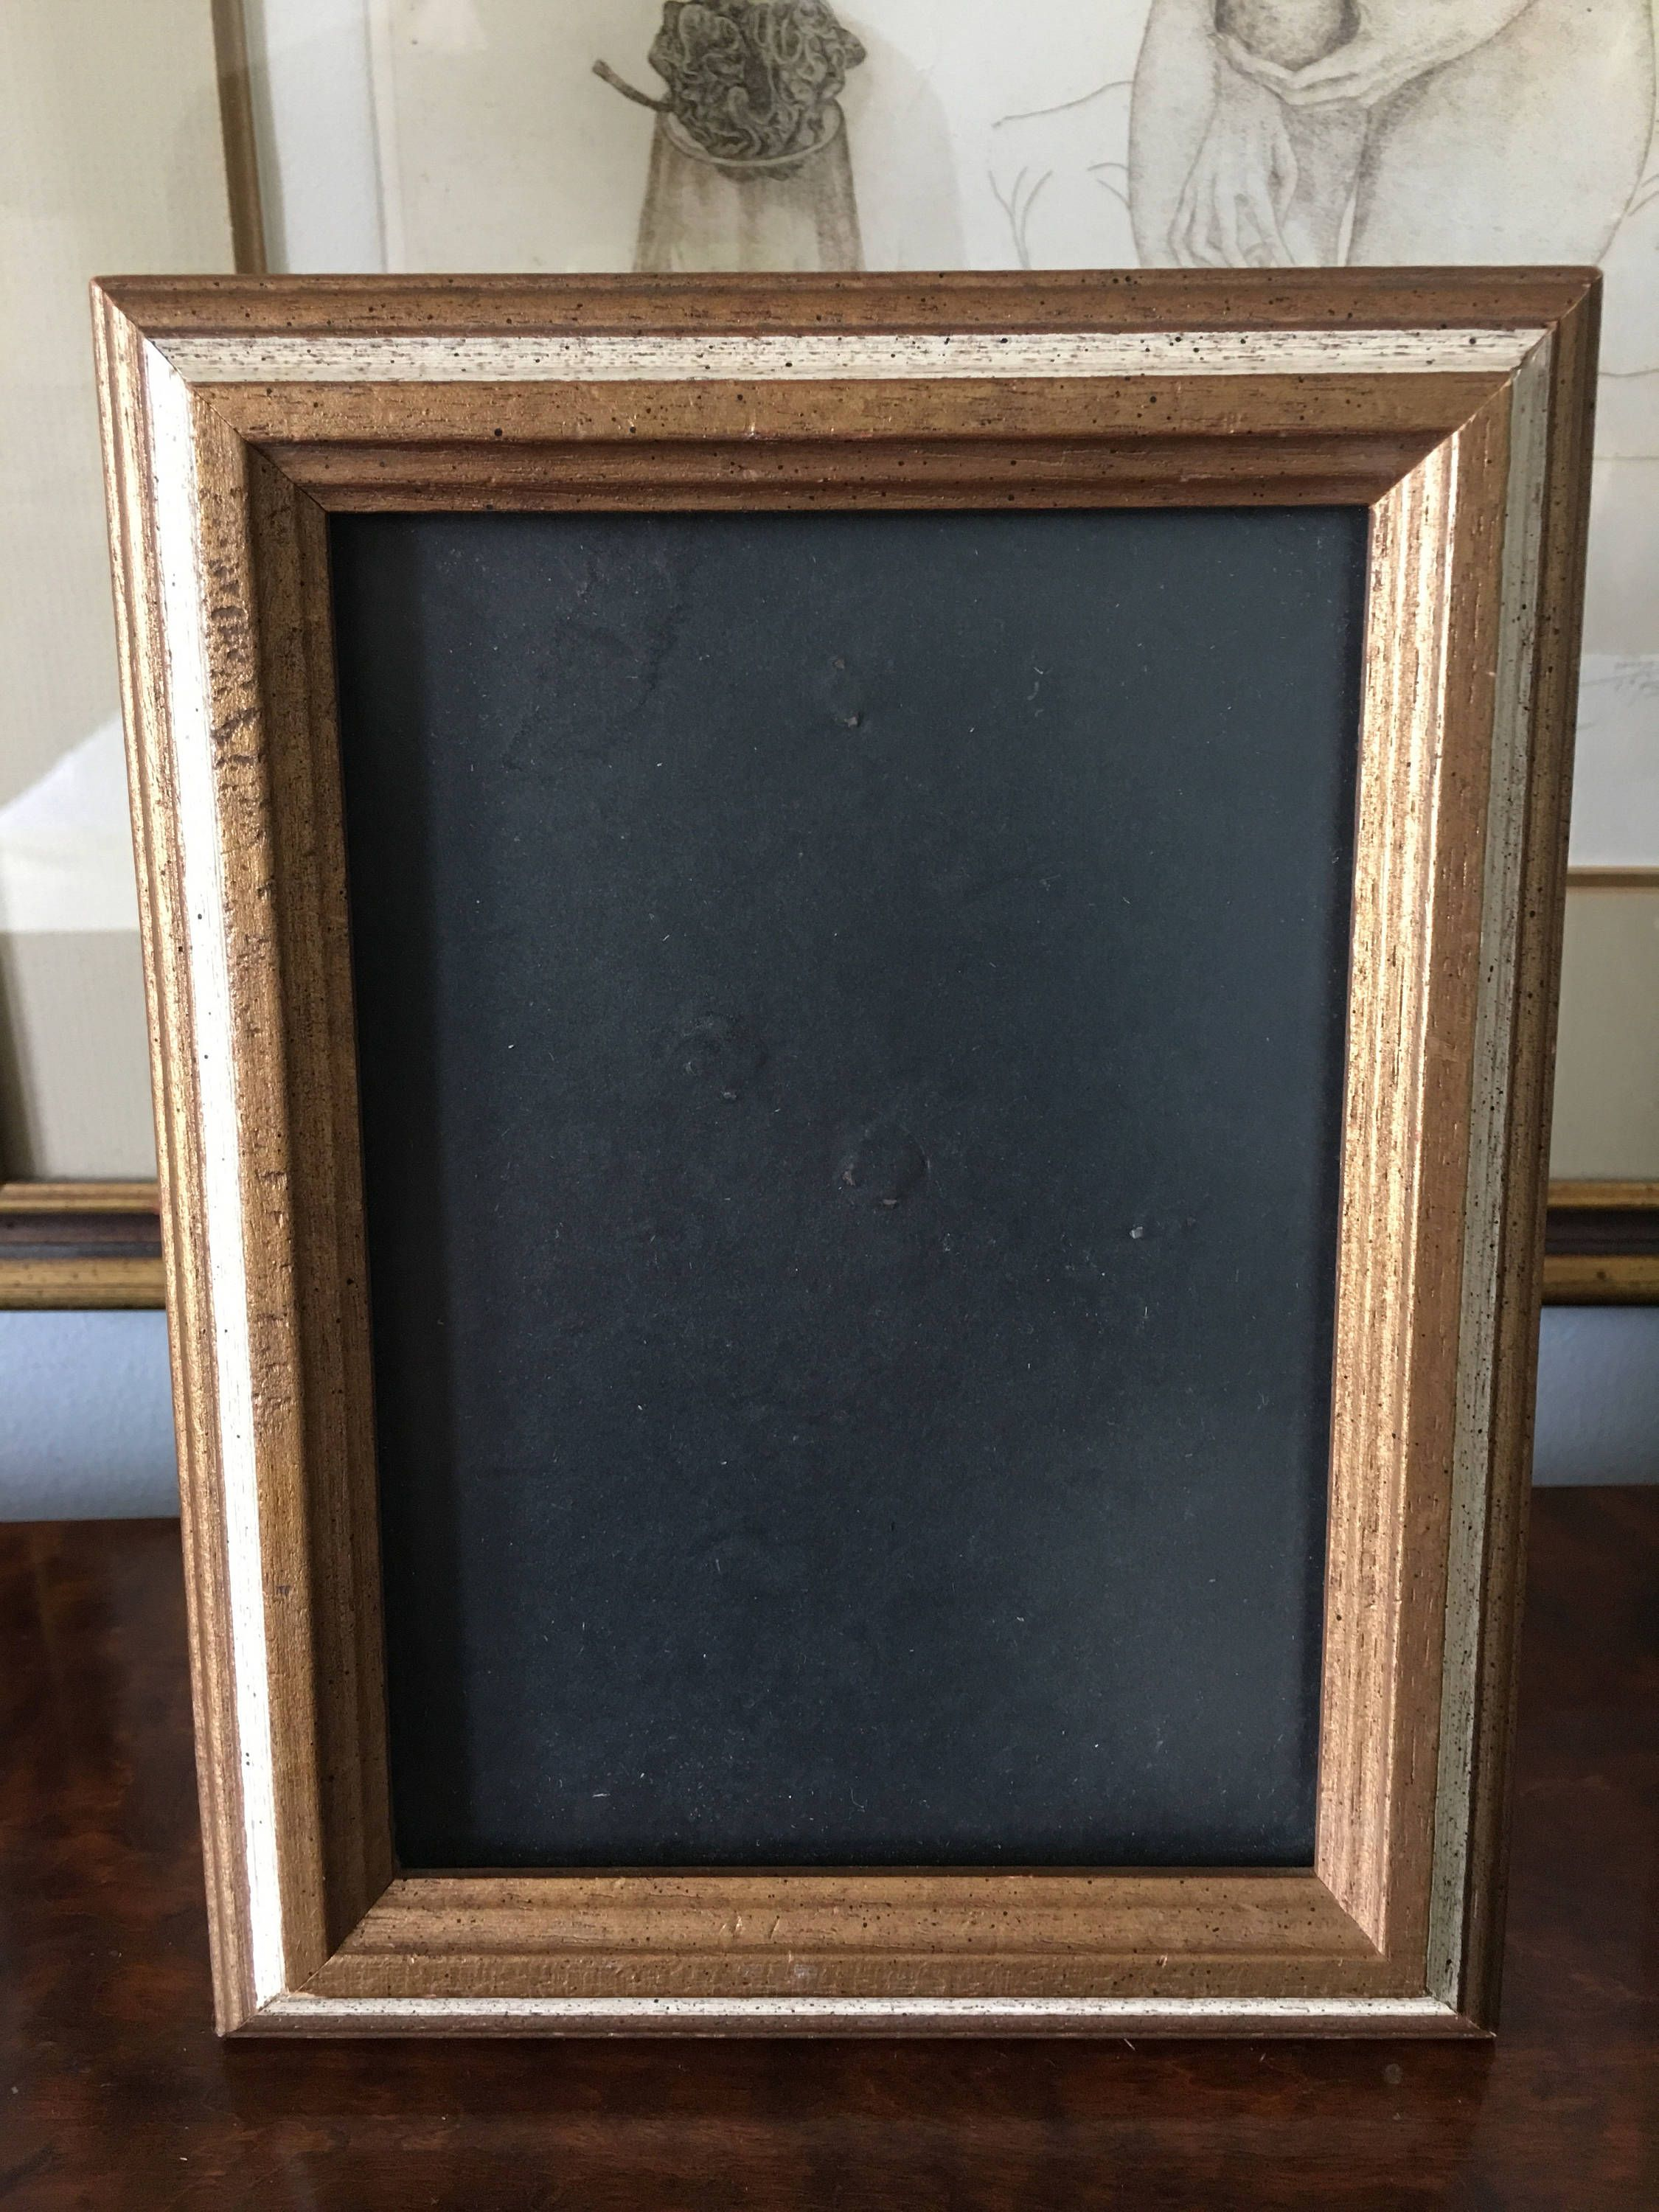 Vintage Gold Wooden Photo Frame By Aniadesigns On Etsy Wooden Photo Frames Photo Frame Wall Photo Frame